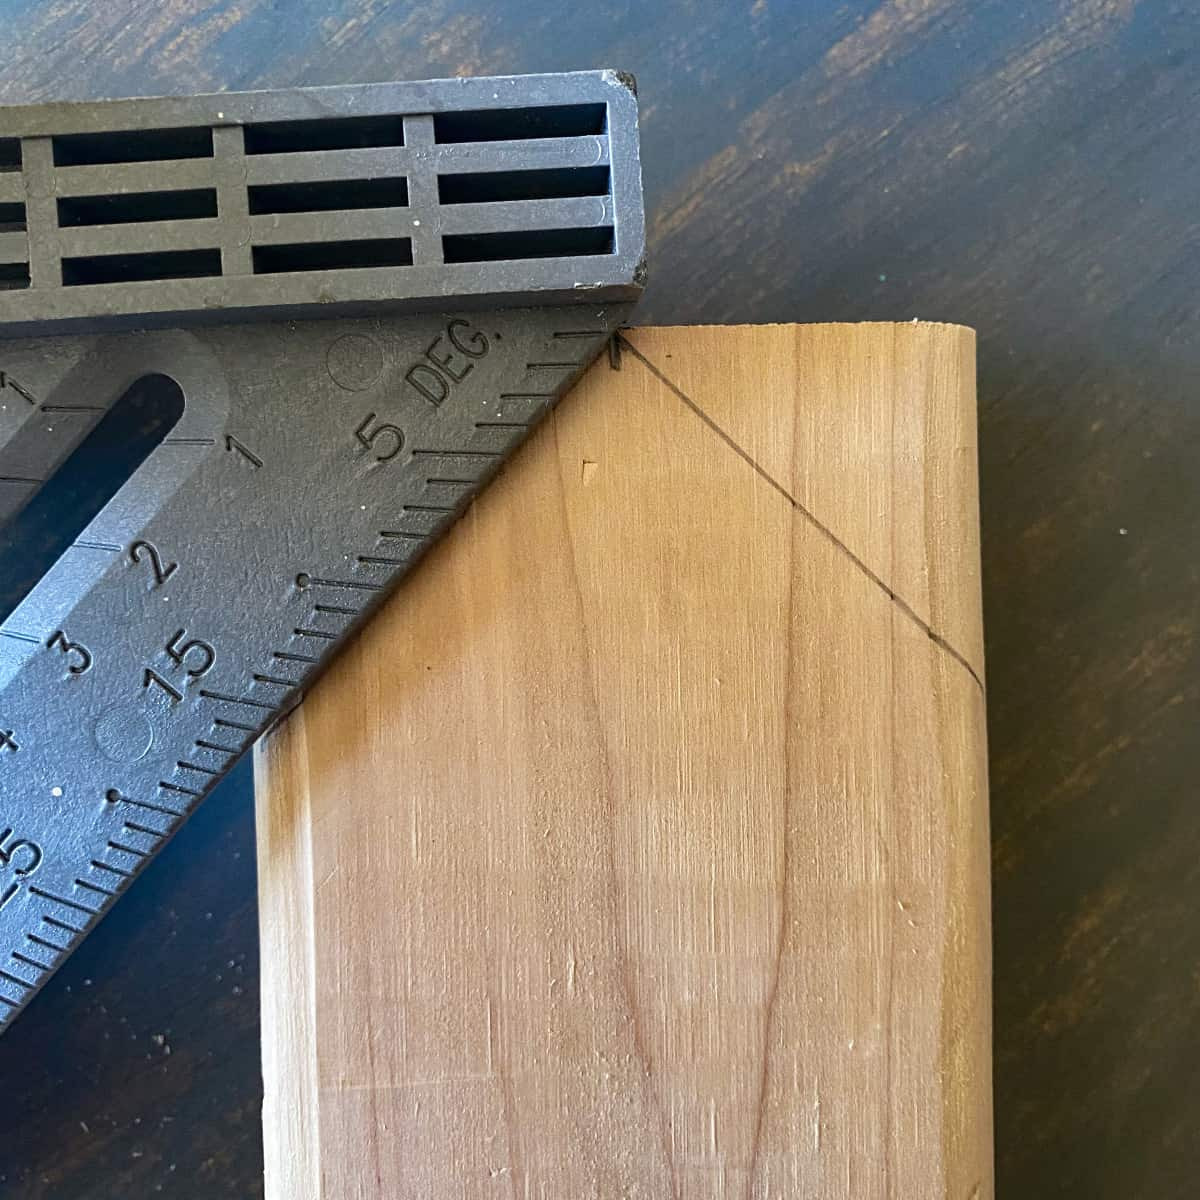 drawing a 45 degree angle on a wood board using a carpenters square.